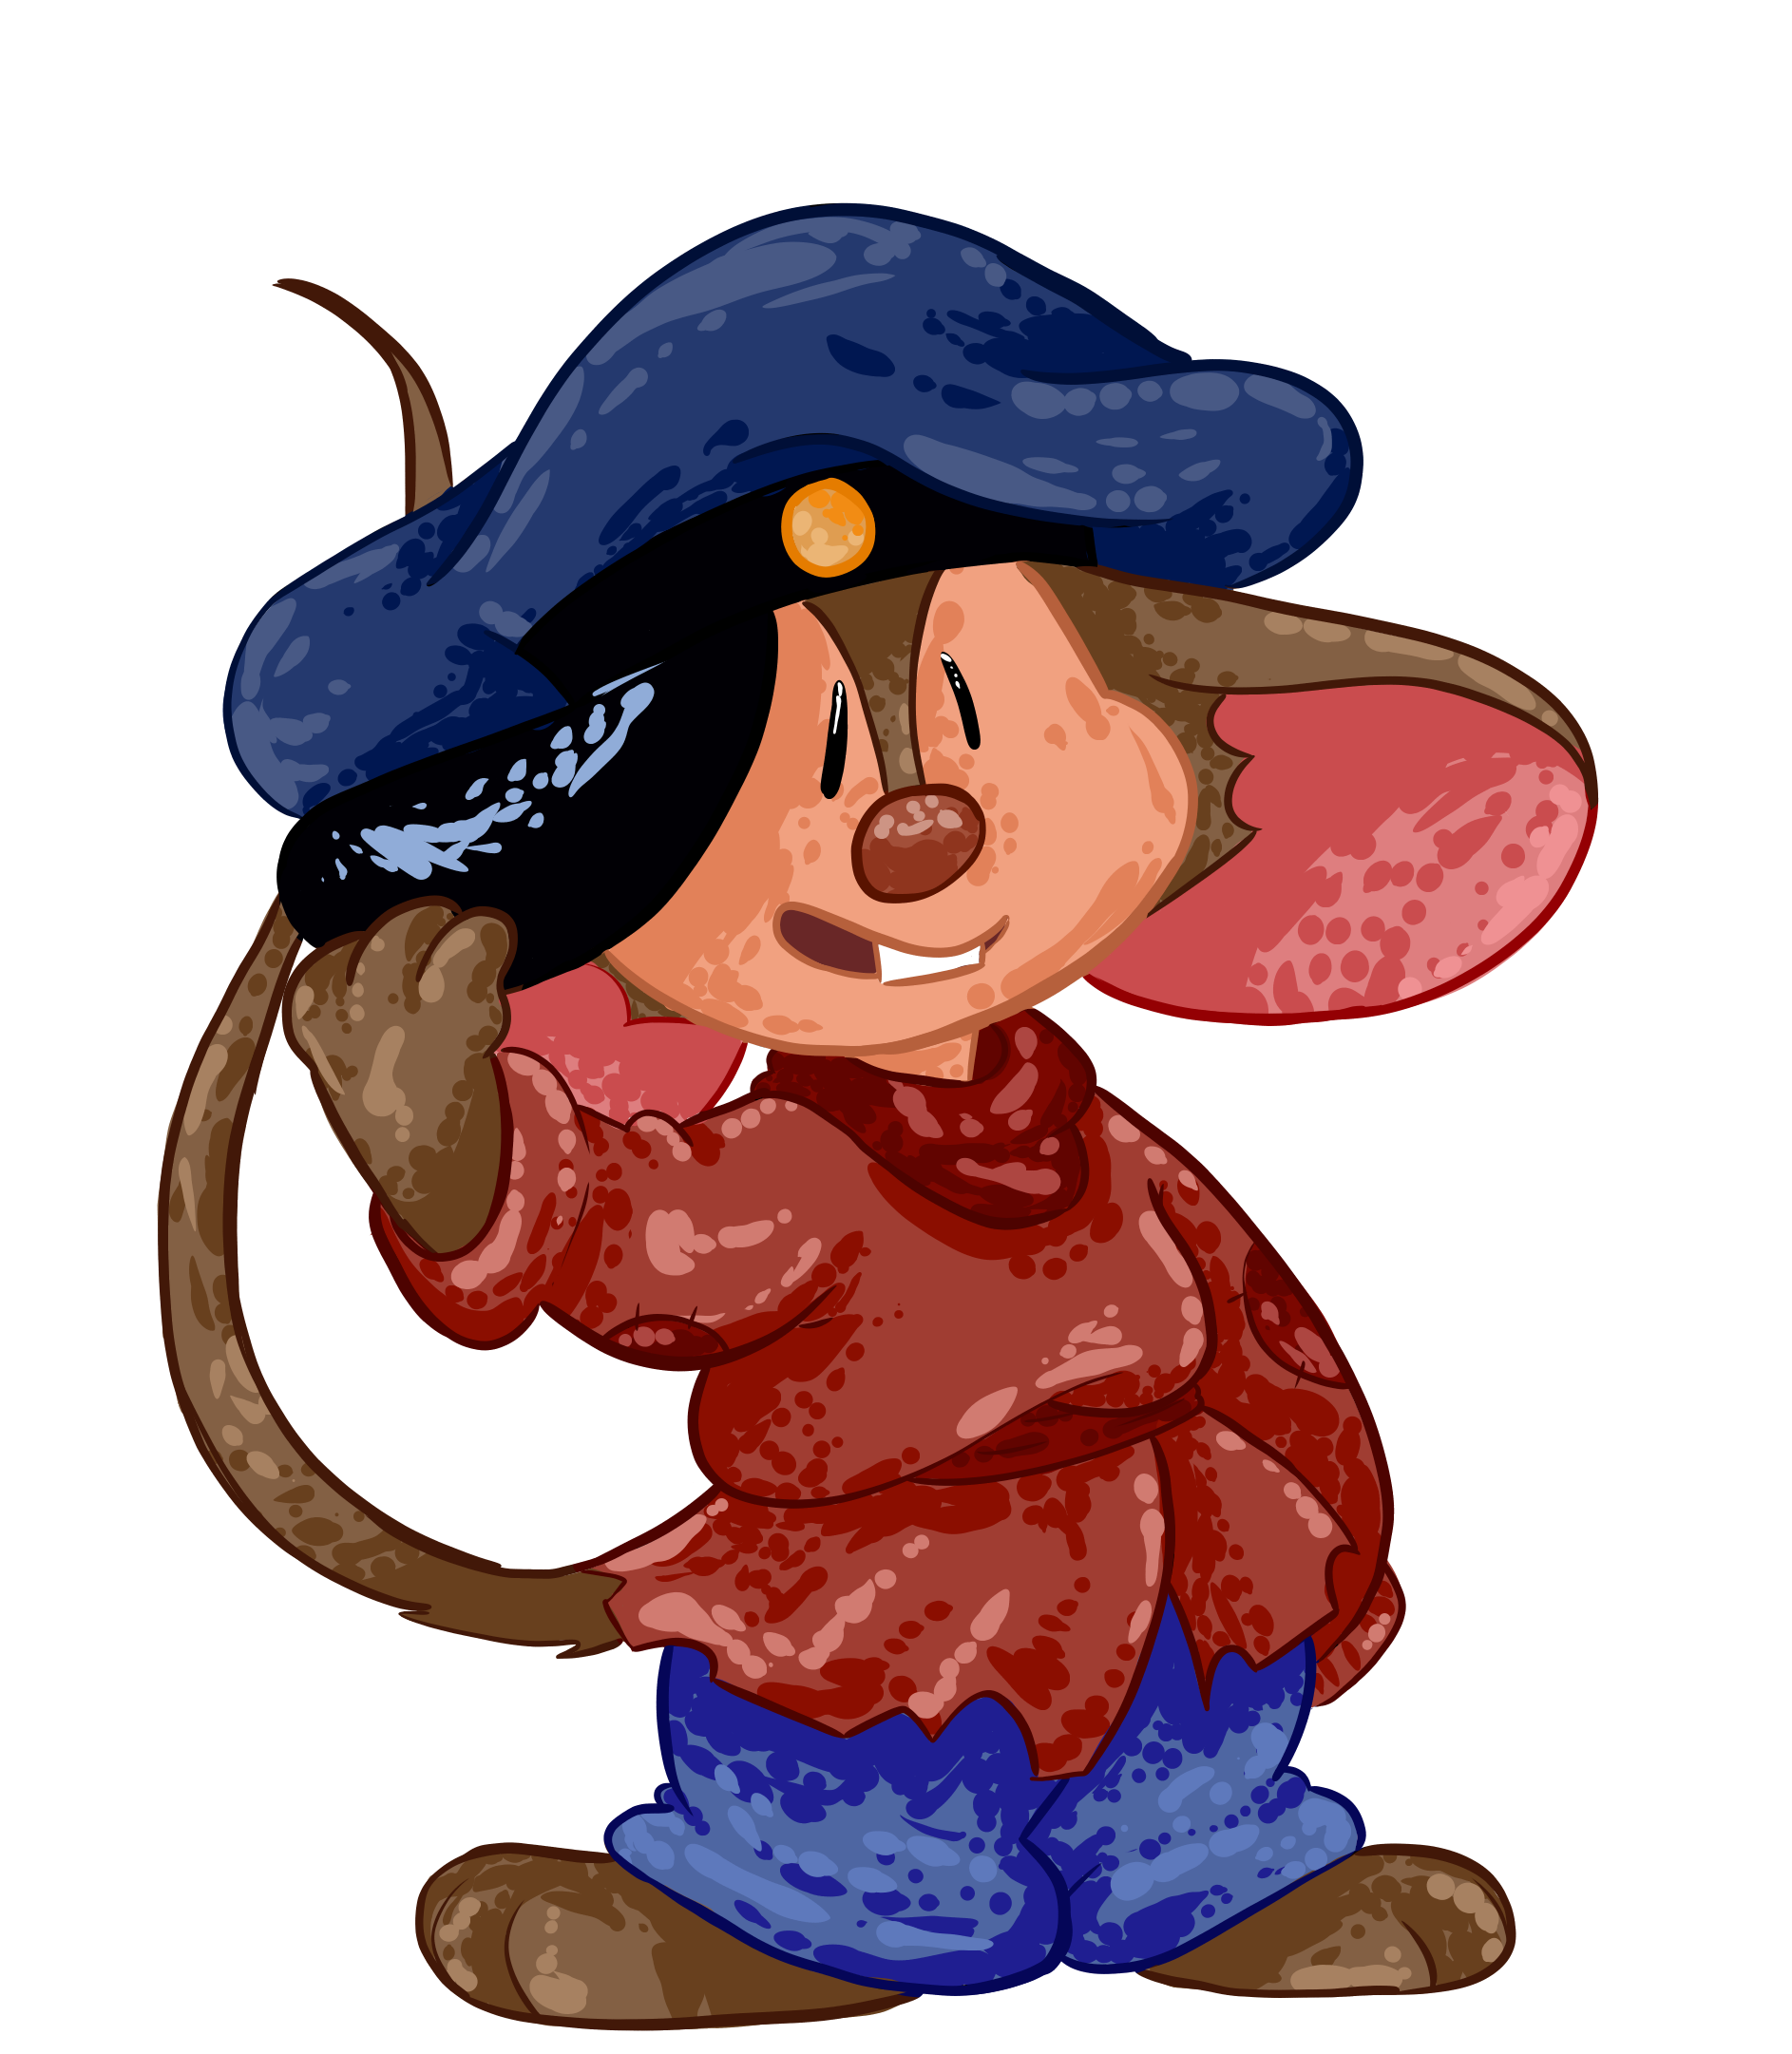 Image fievel png invaderzimshippingfanon. Hats clipart state trooper